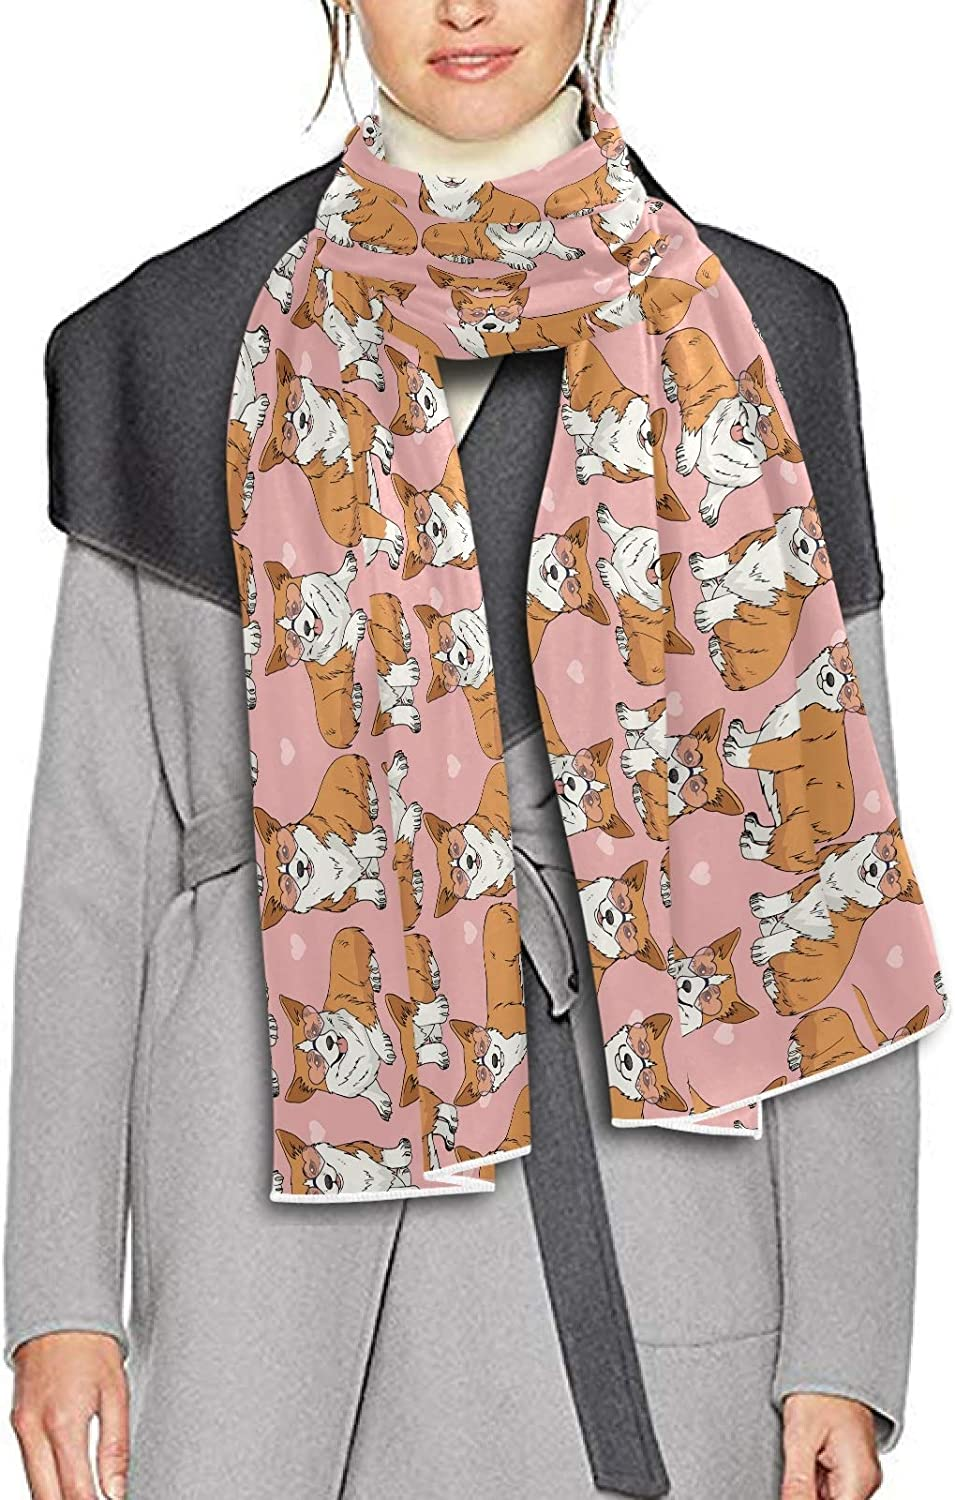 Scarf for Women and Men Corgi Shawl Wraps Blanket Scarf Thick Soft Winter Oversized Scarf Lightweight